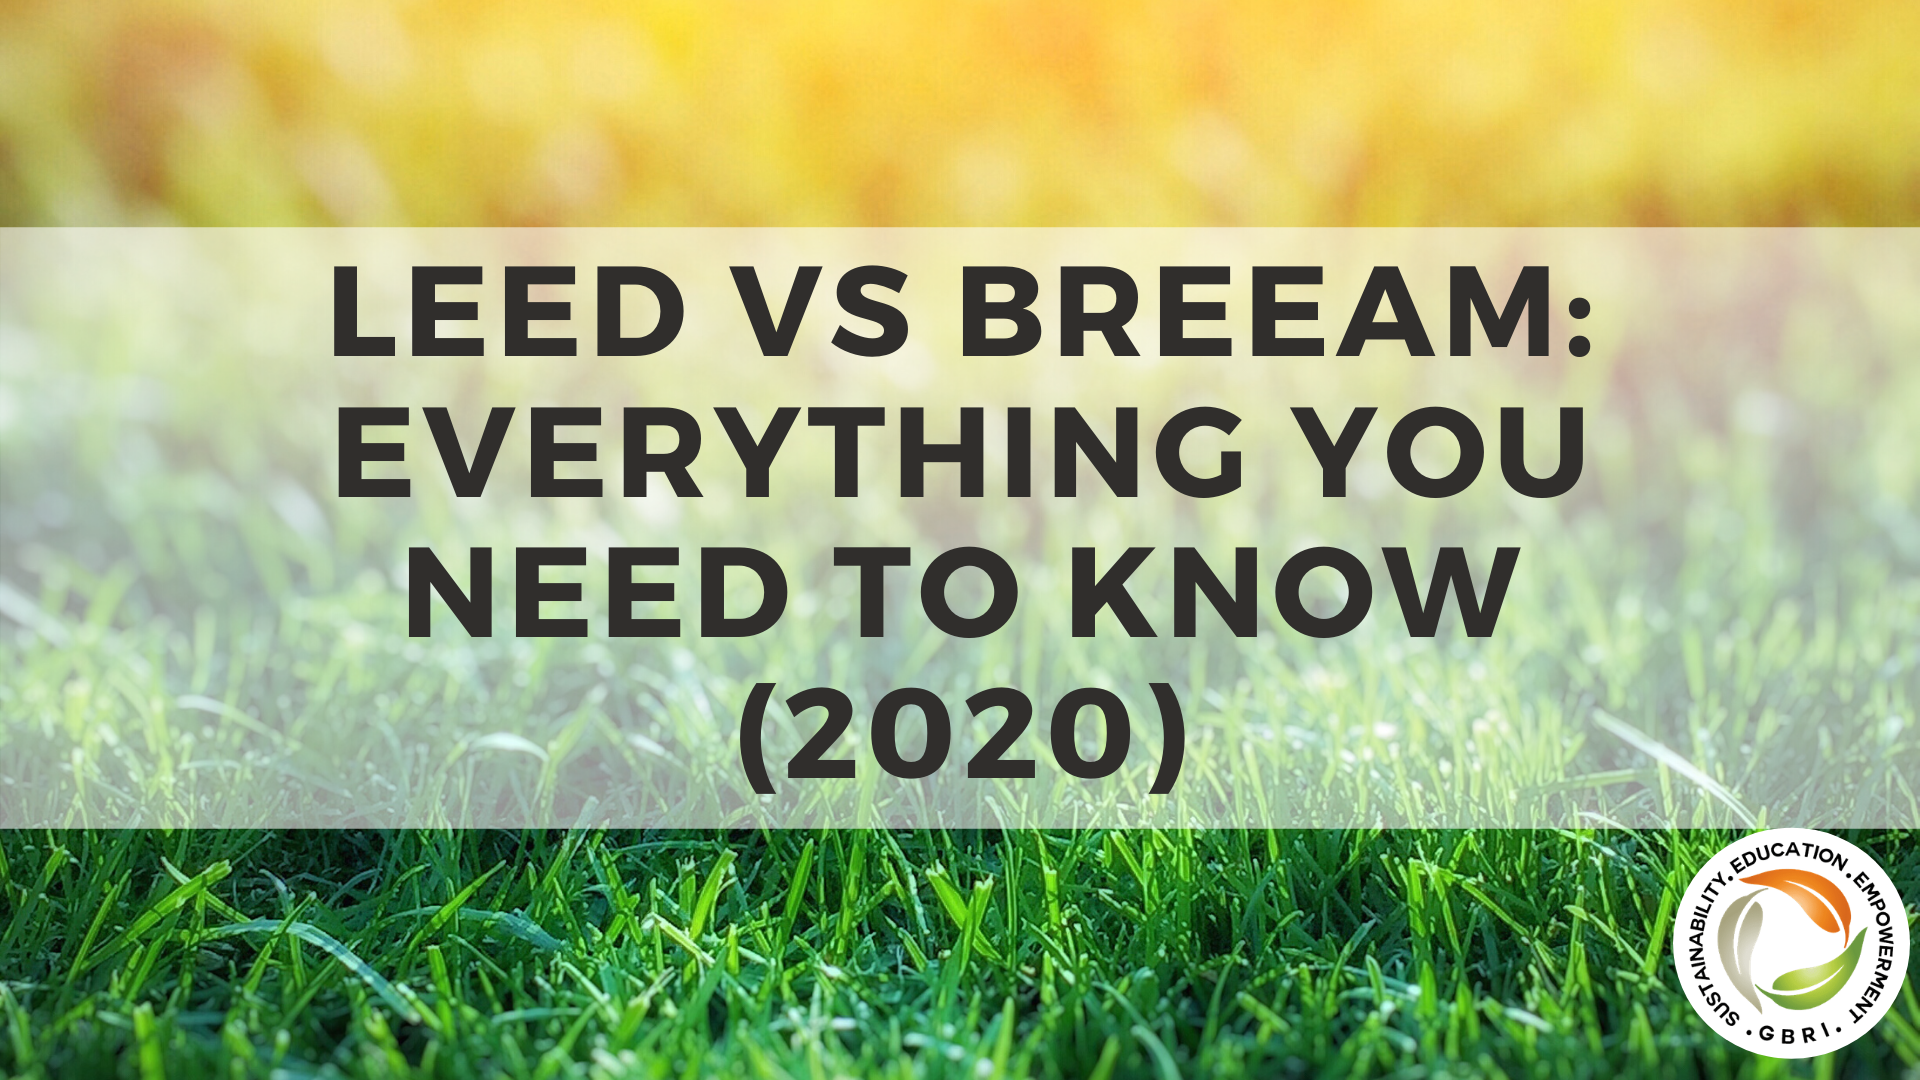 LEED Vs BREEAM: Everything You Need To Know (2020)|Difference between LEED and BREEAM